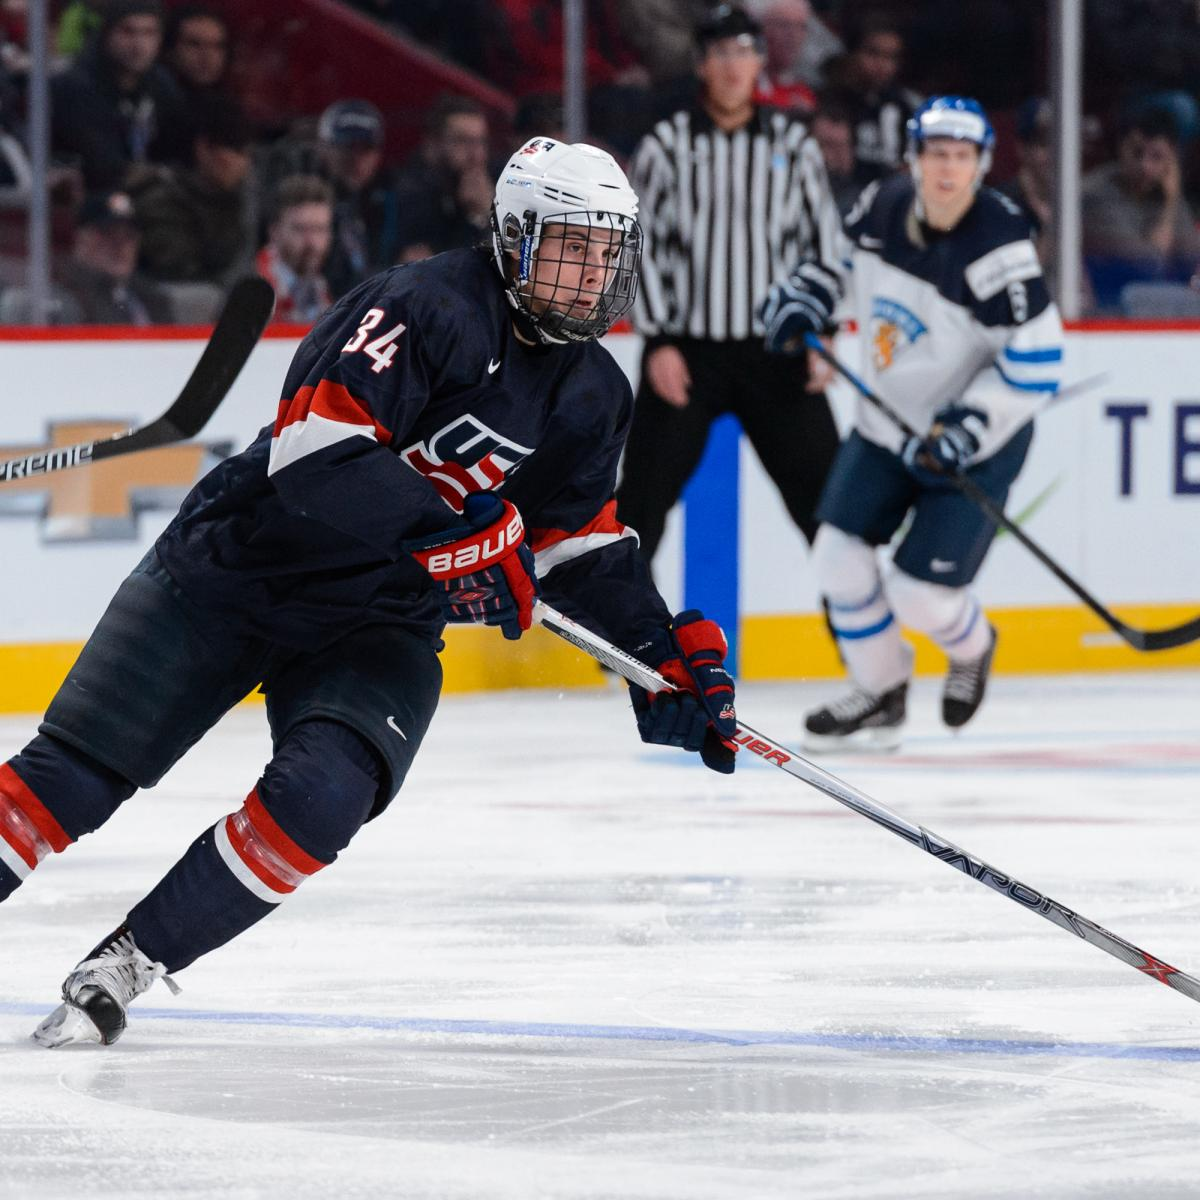 Updated 2016 nhl draft order - Nhl Draft 2016 Updated Order And Mock Draft After Stanley Cup Final Bleacher Report